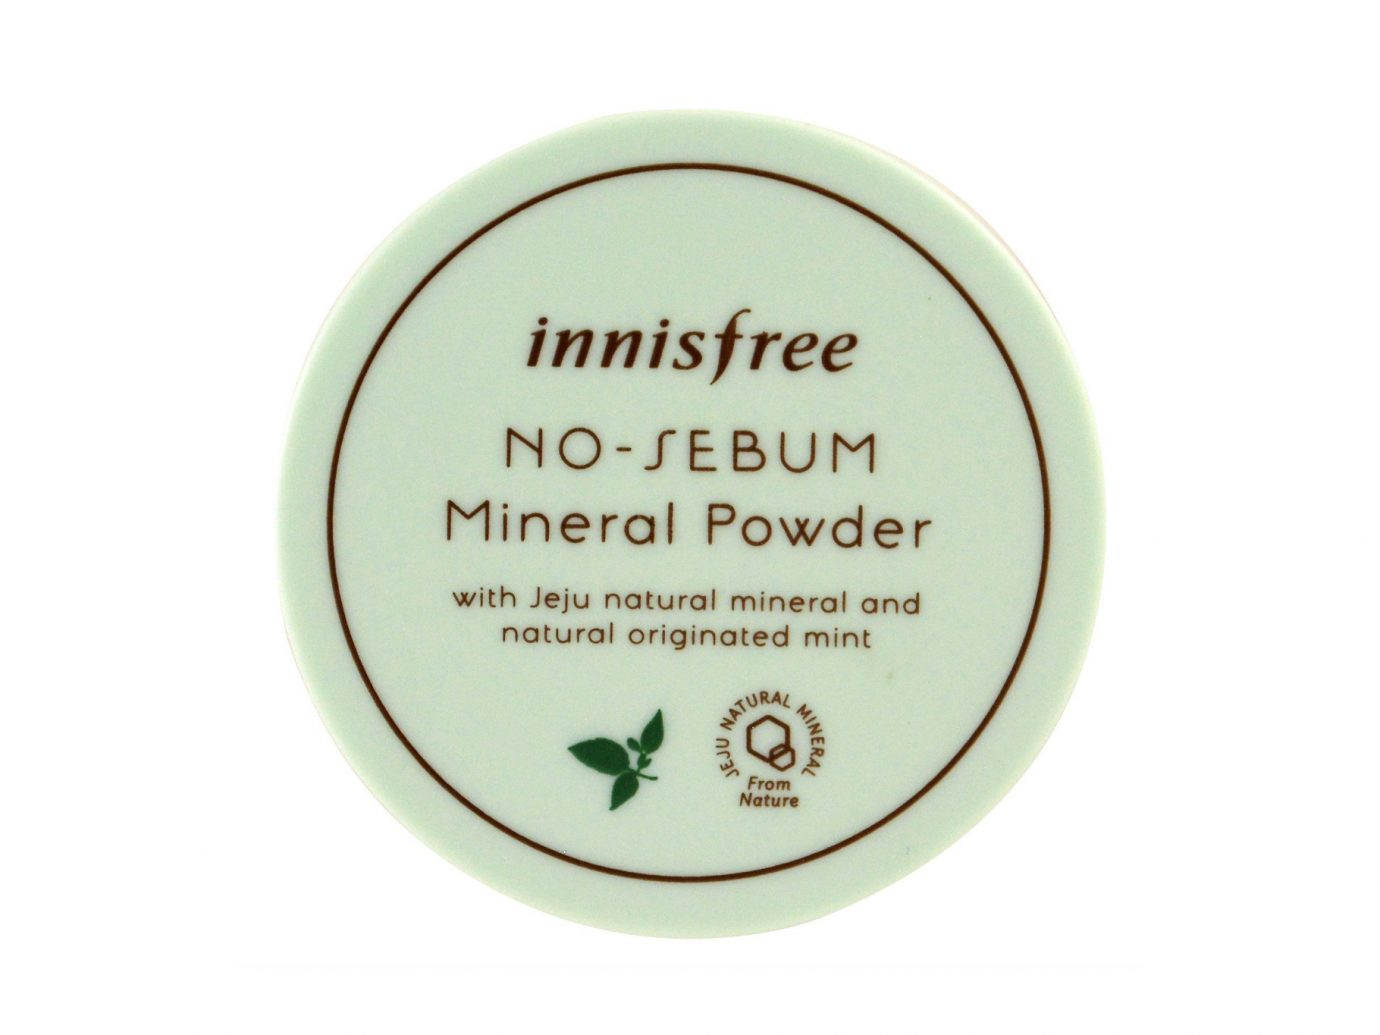 Korean beauty product Innisfree No-Sebum Mineral Powder